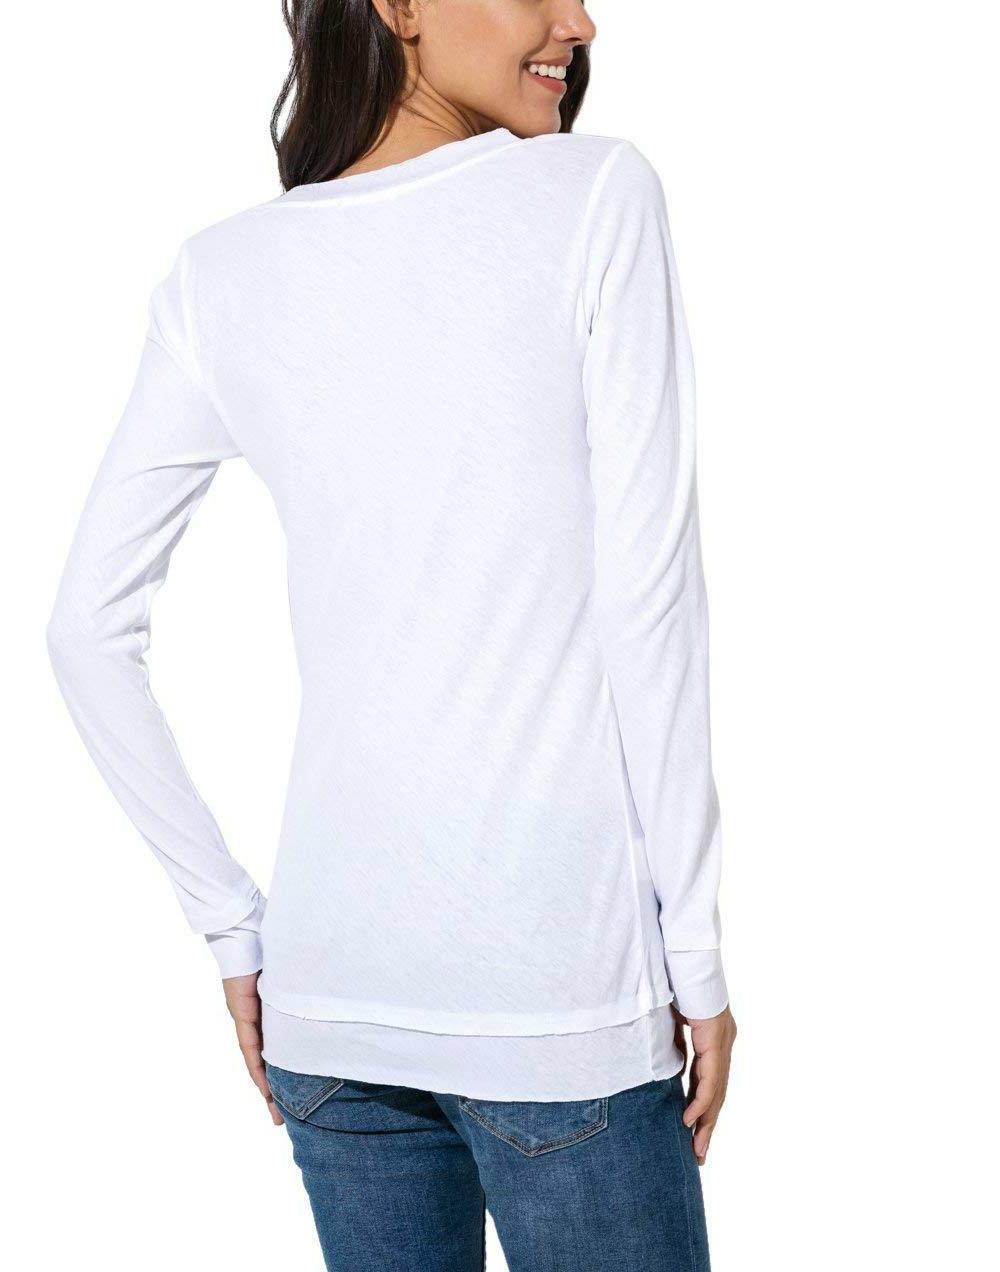 Womens V Neck 100% Cotton Slim Solid